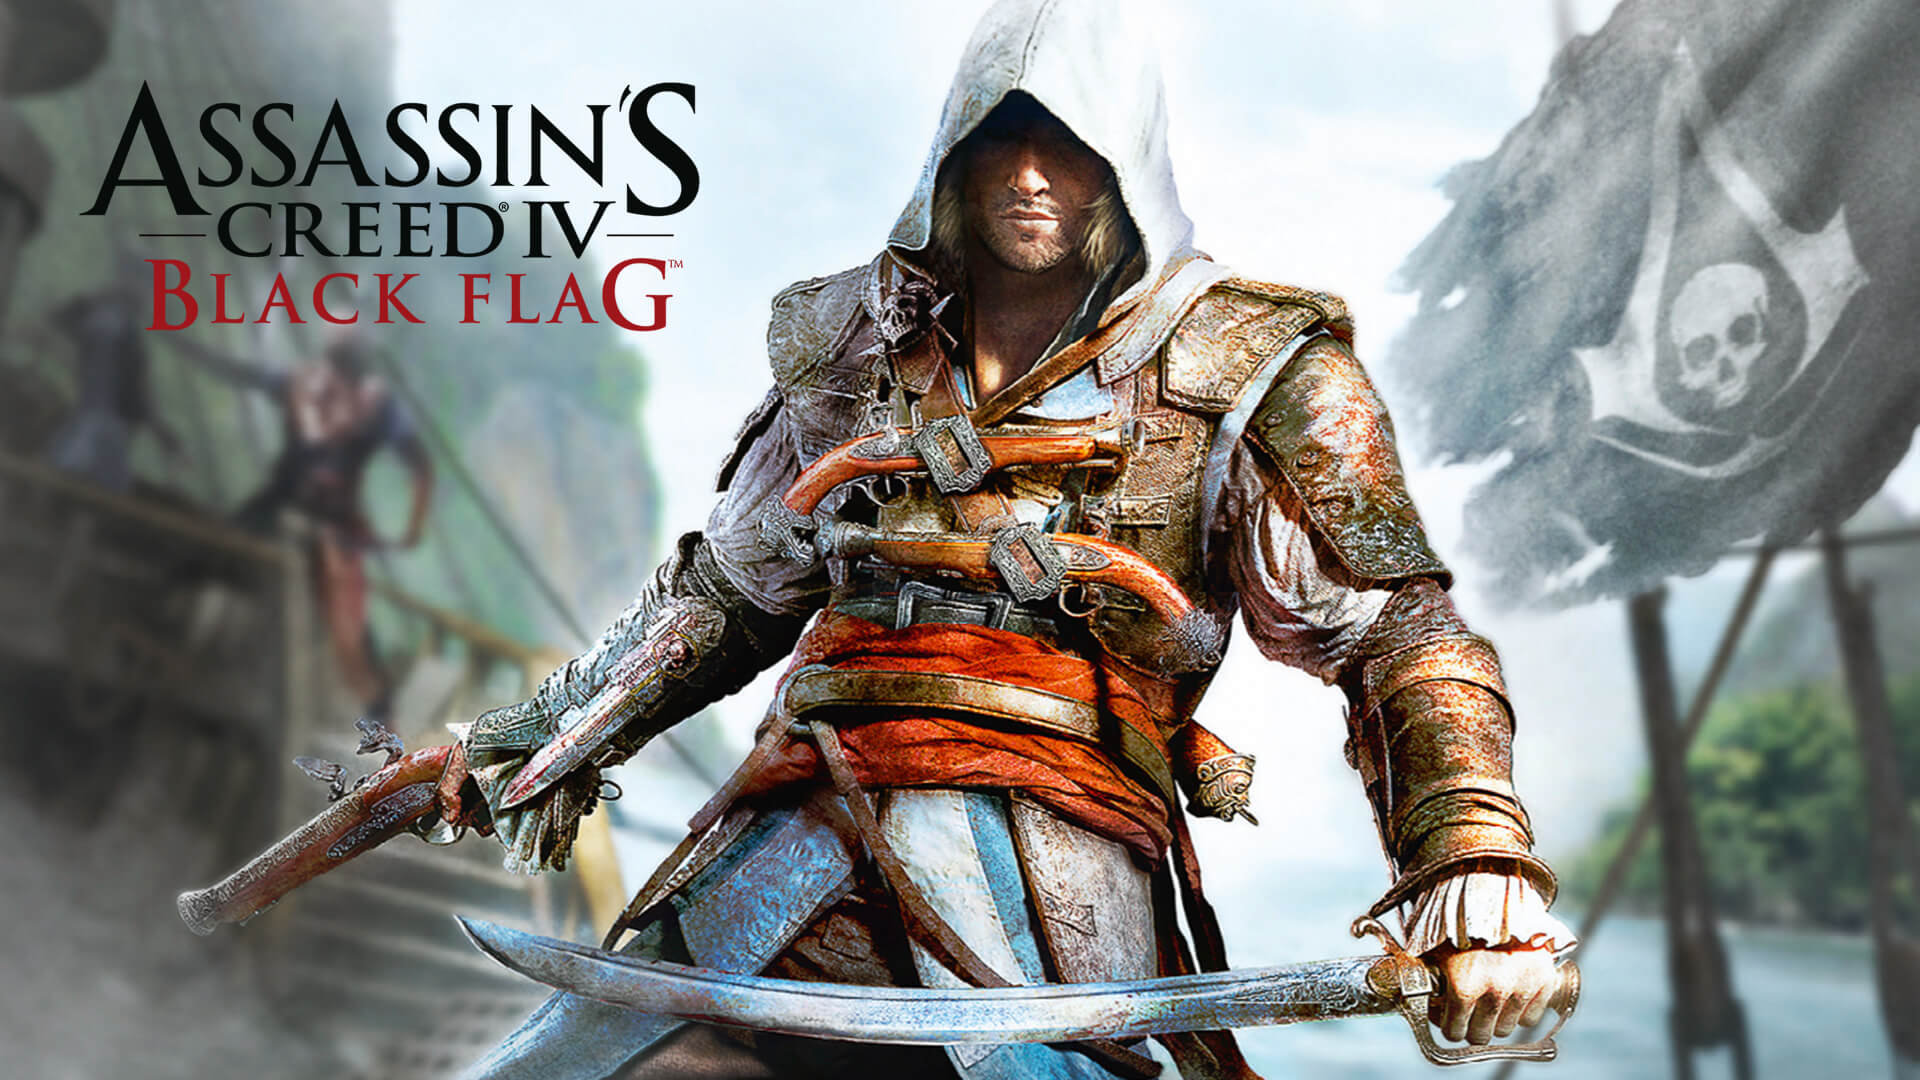 download assassins creed 2 highly compressed 10mb